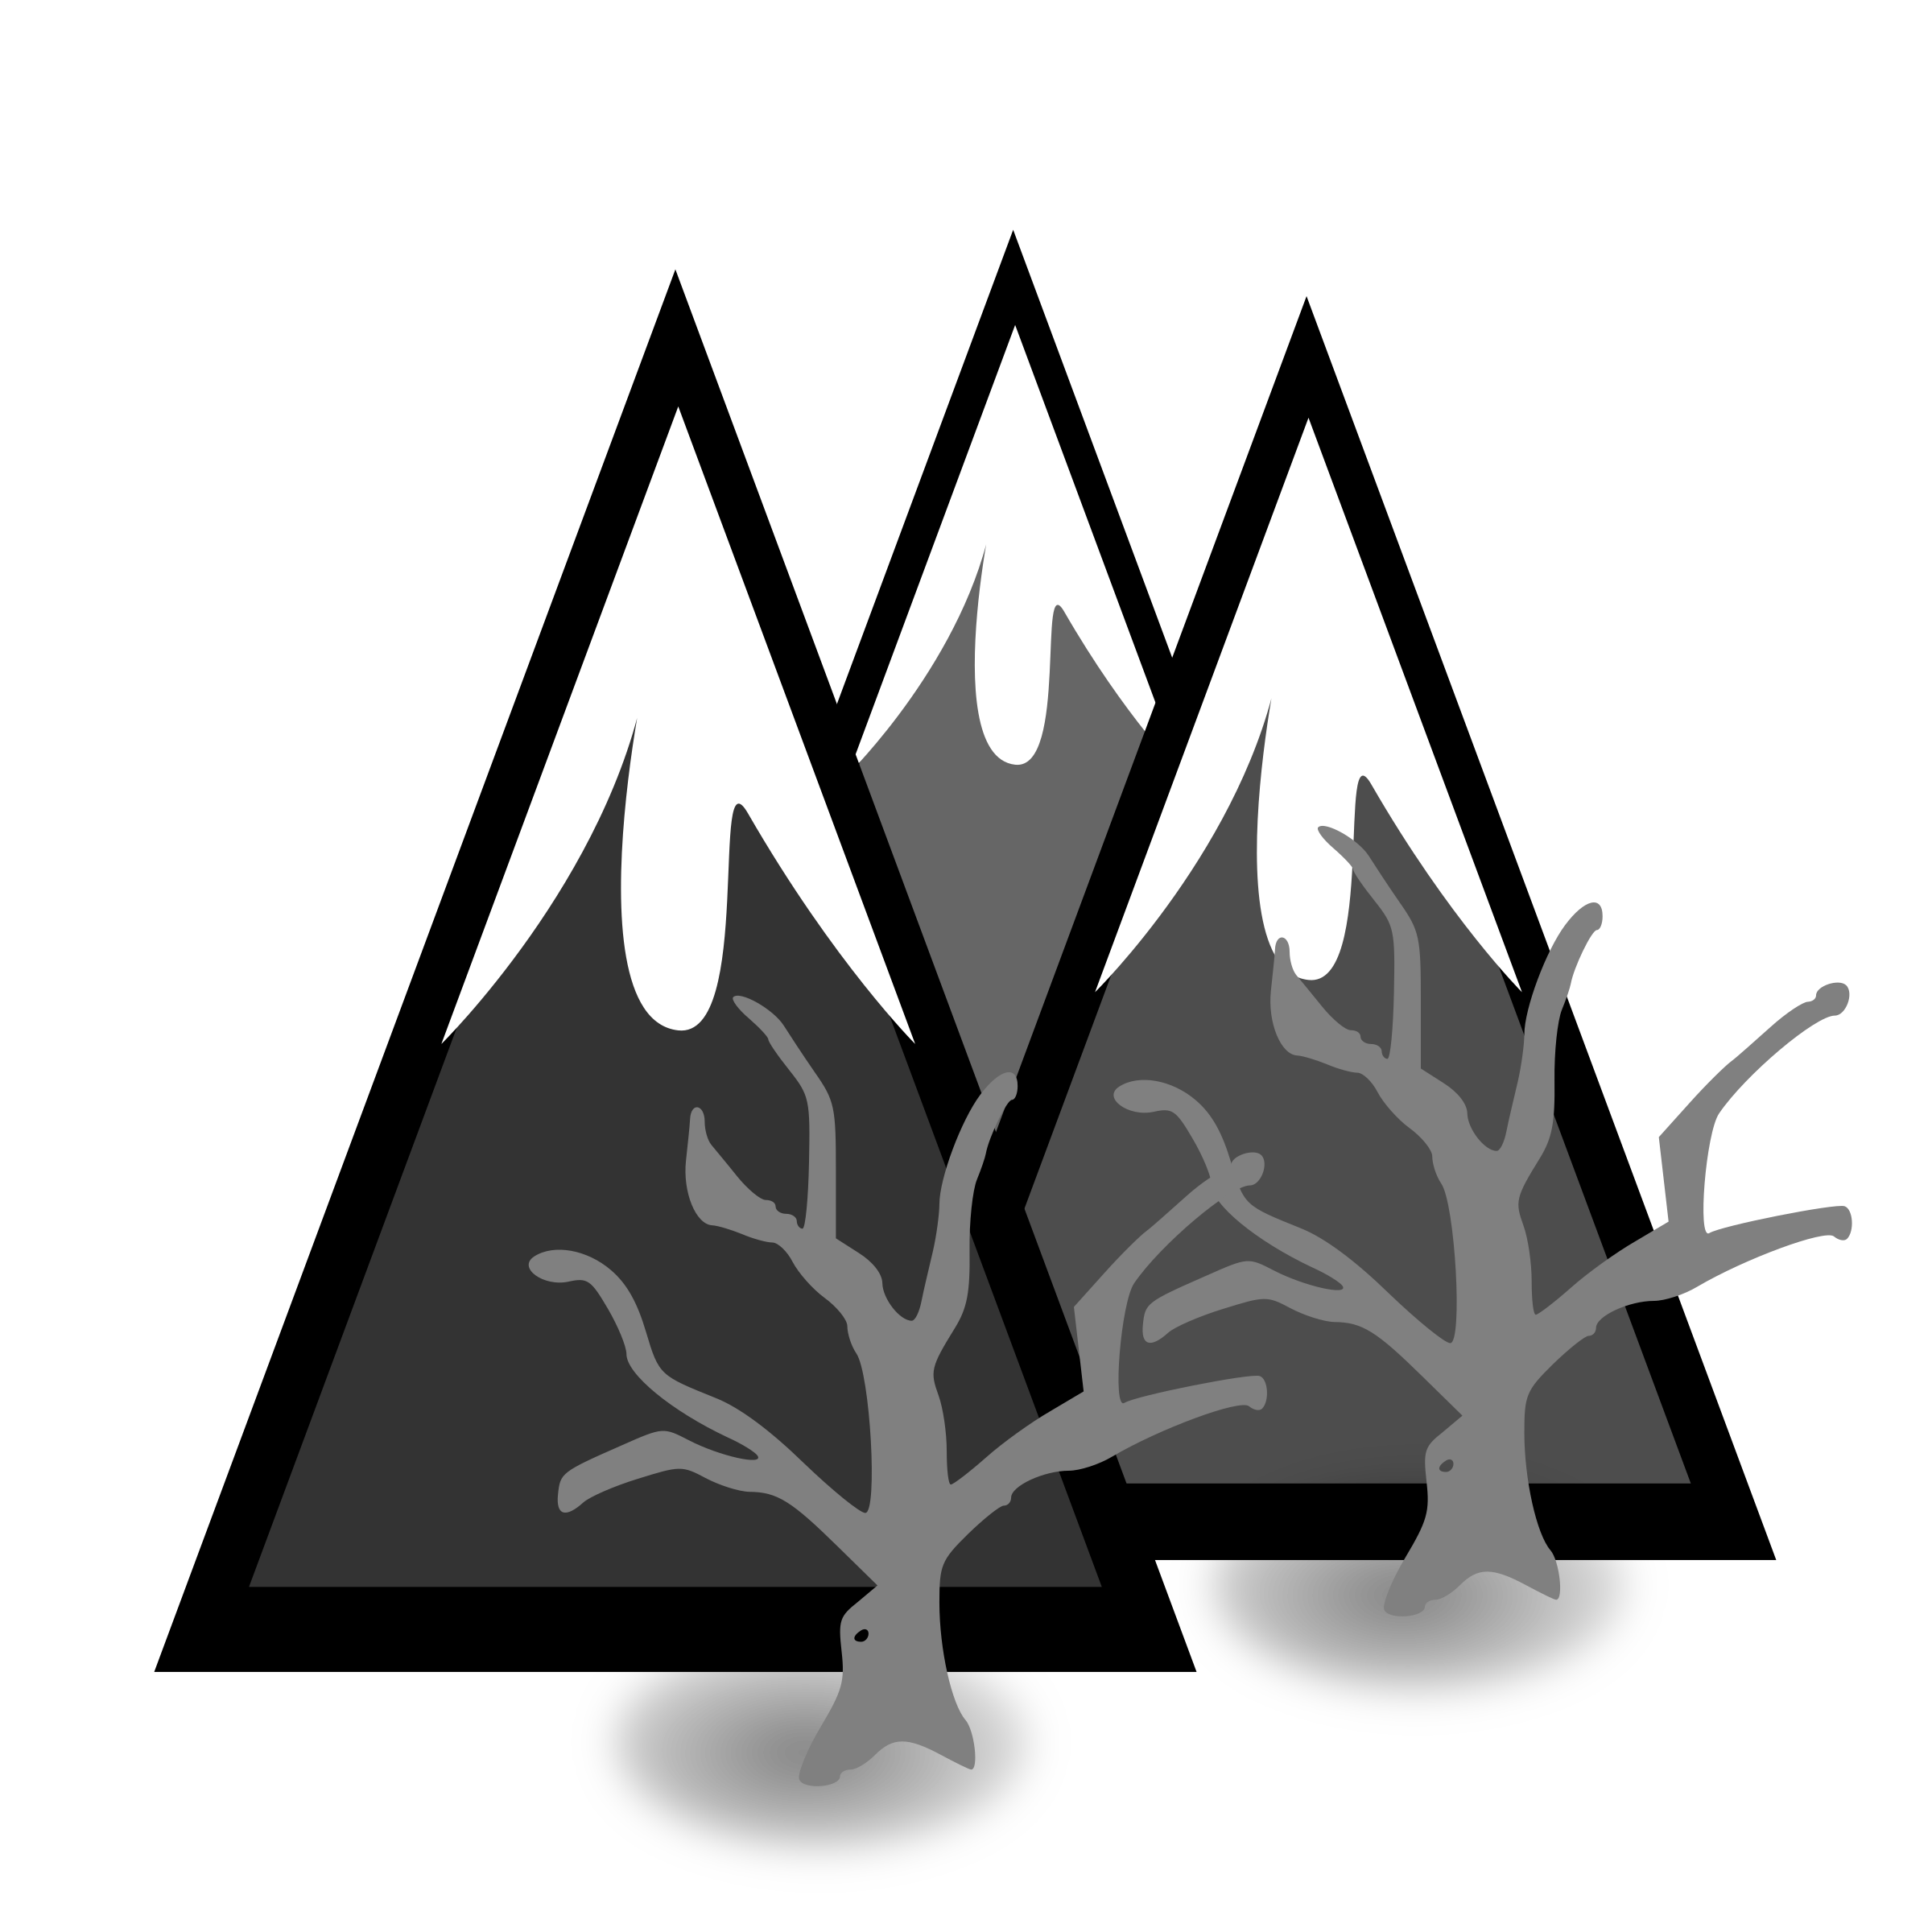 clipart library library Clipart mountains black and white. Dead forest big image